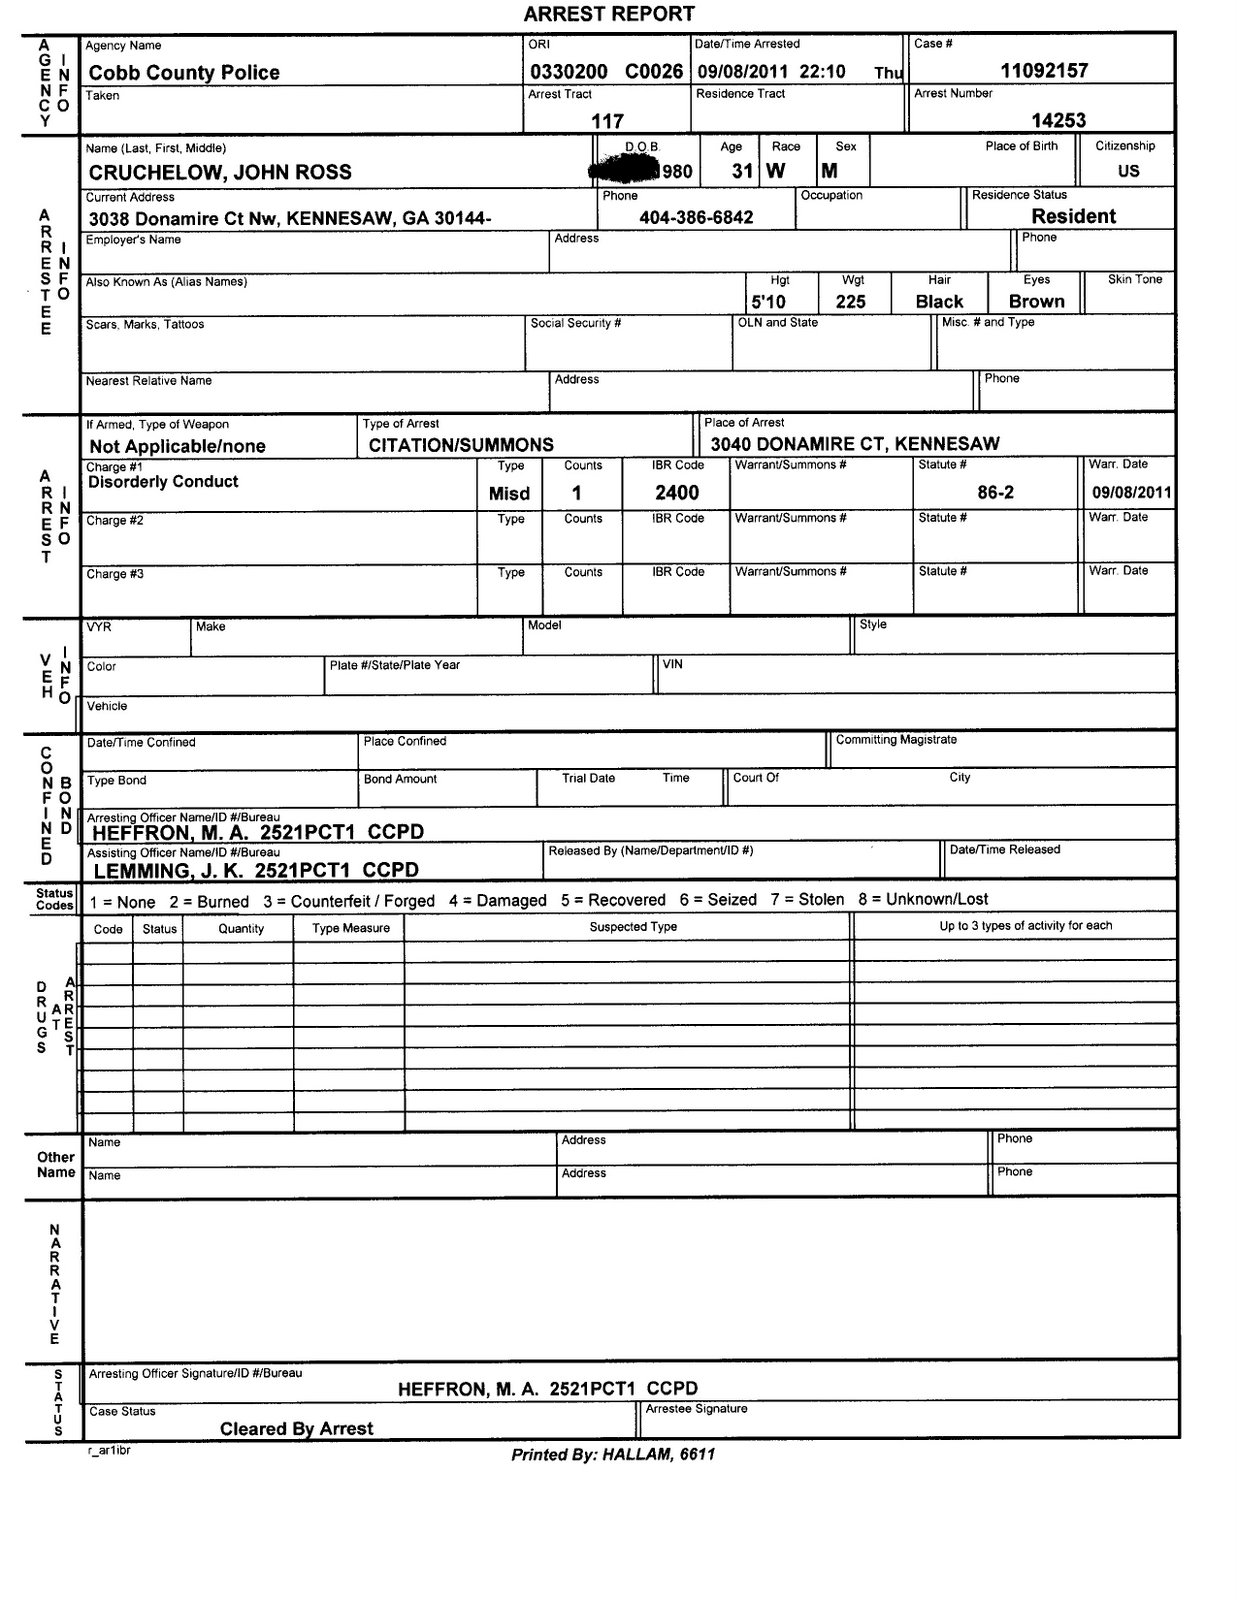 Police Report Template Image1 Police Report Template  Microsoft Word Templates For Reports